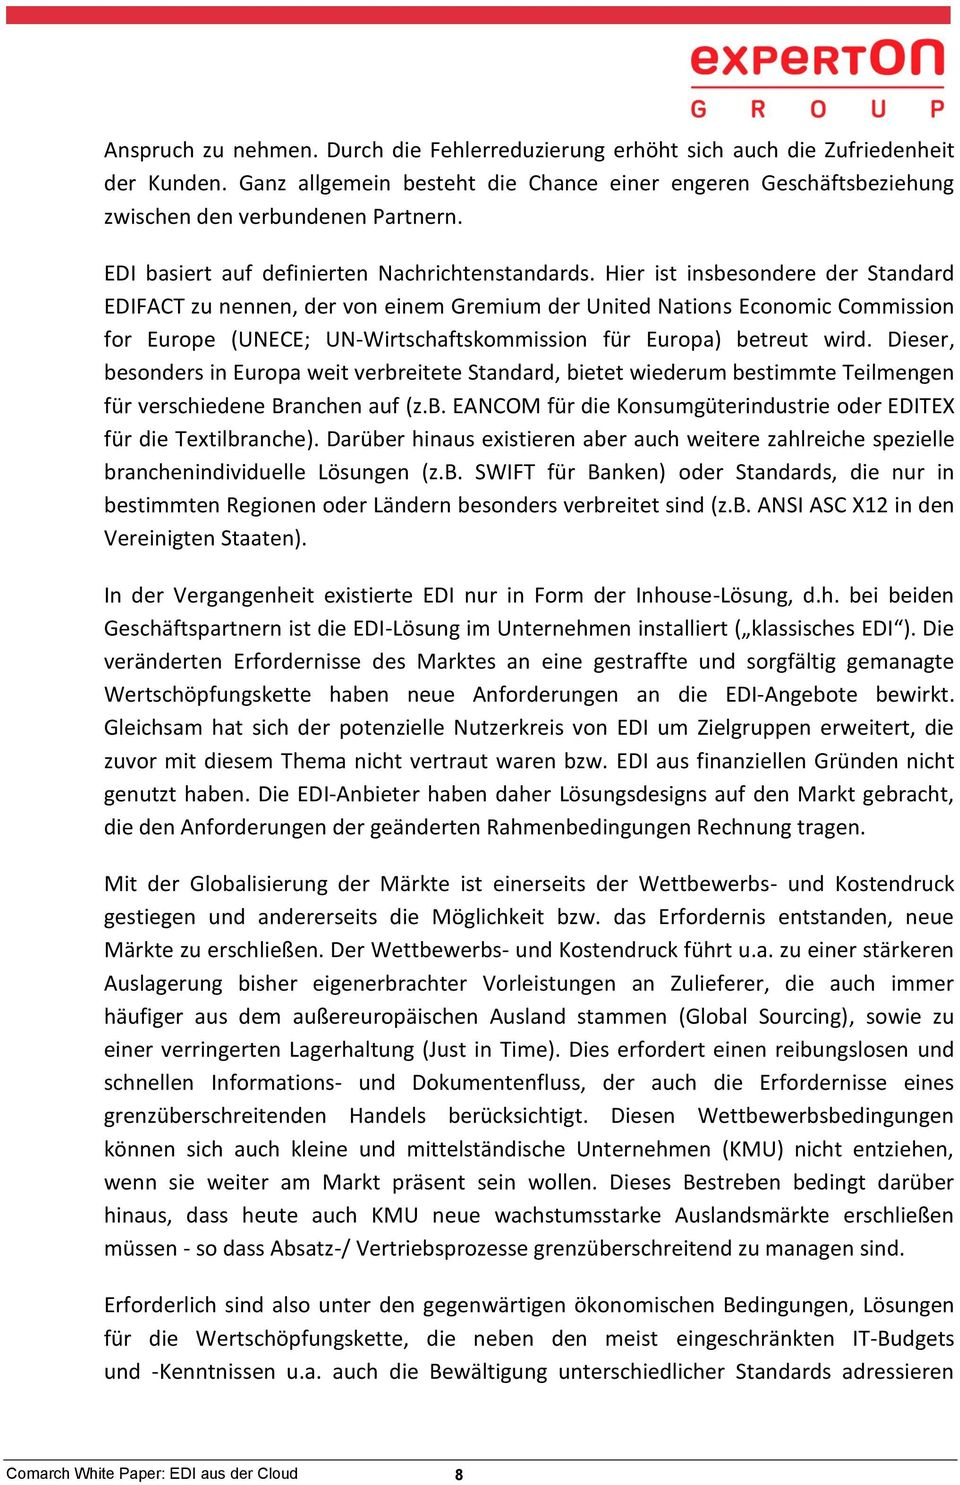 Hier ist insbesondere der Standard EDIFACT zu nennen, der von einem Gremium der United Nations Economic Commission for Europe (UNECE; UN-Wirtschaftskommission für Europa) betreut wird.